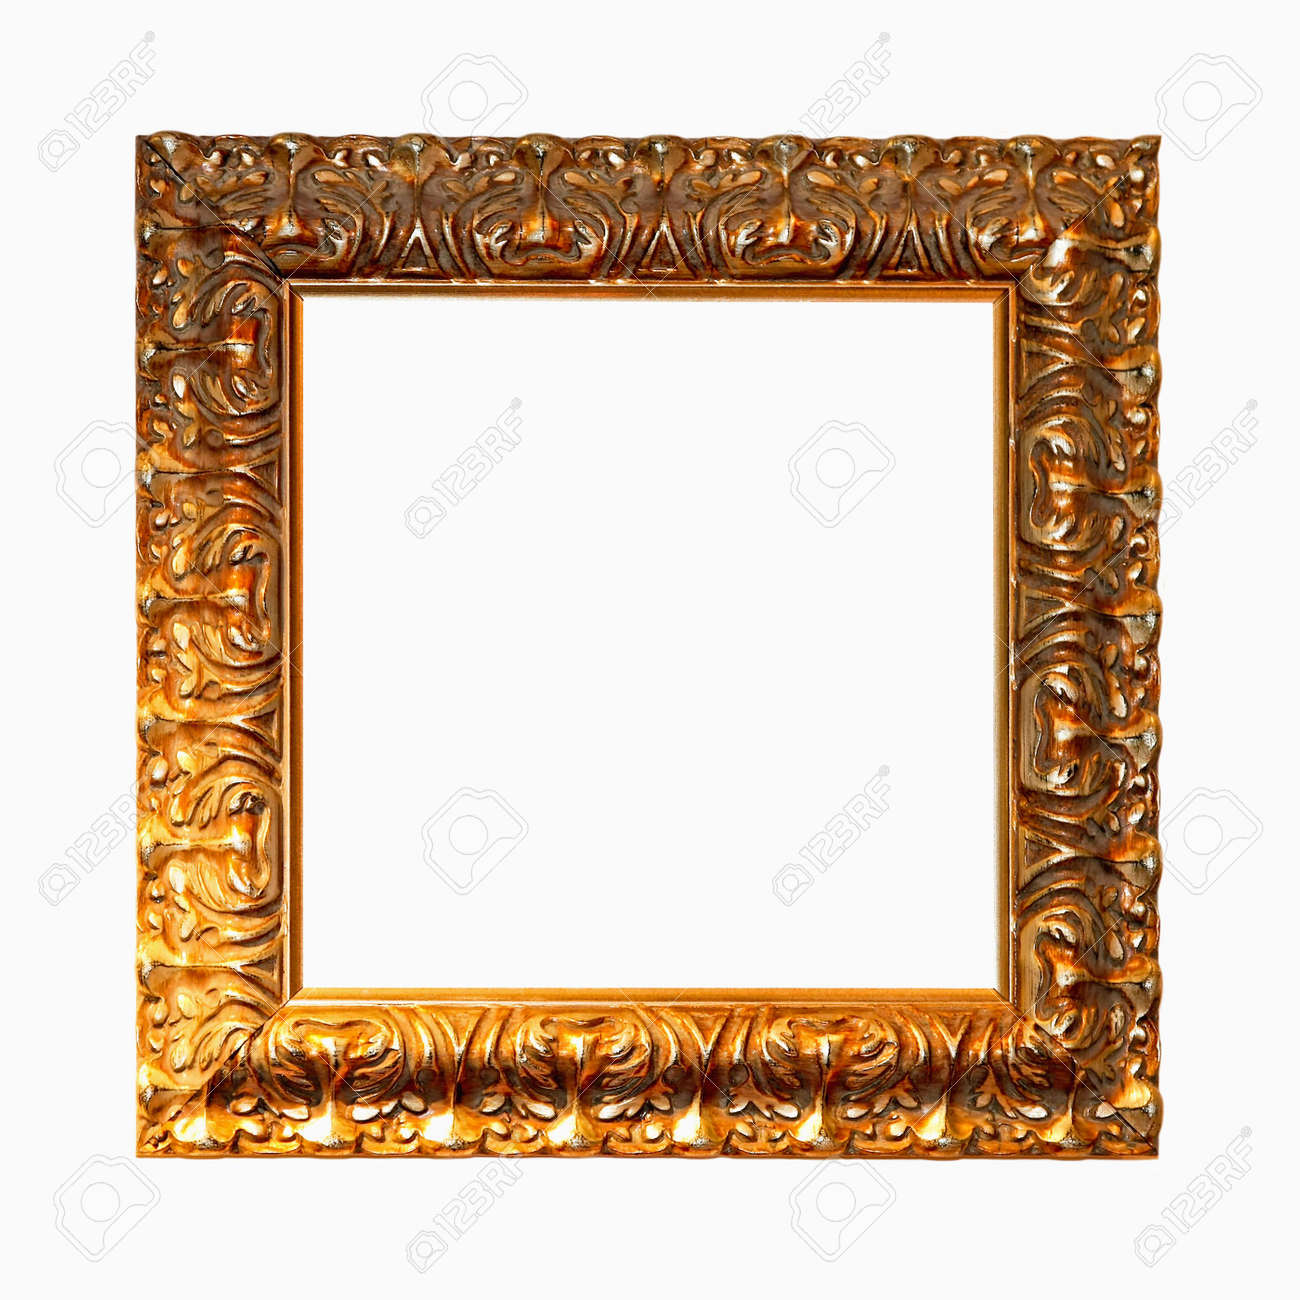 Big Square Frame In Pure Gold Color Stock Photo, Picture And Royalty ...